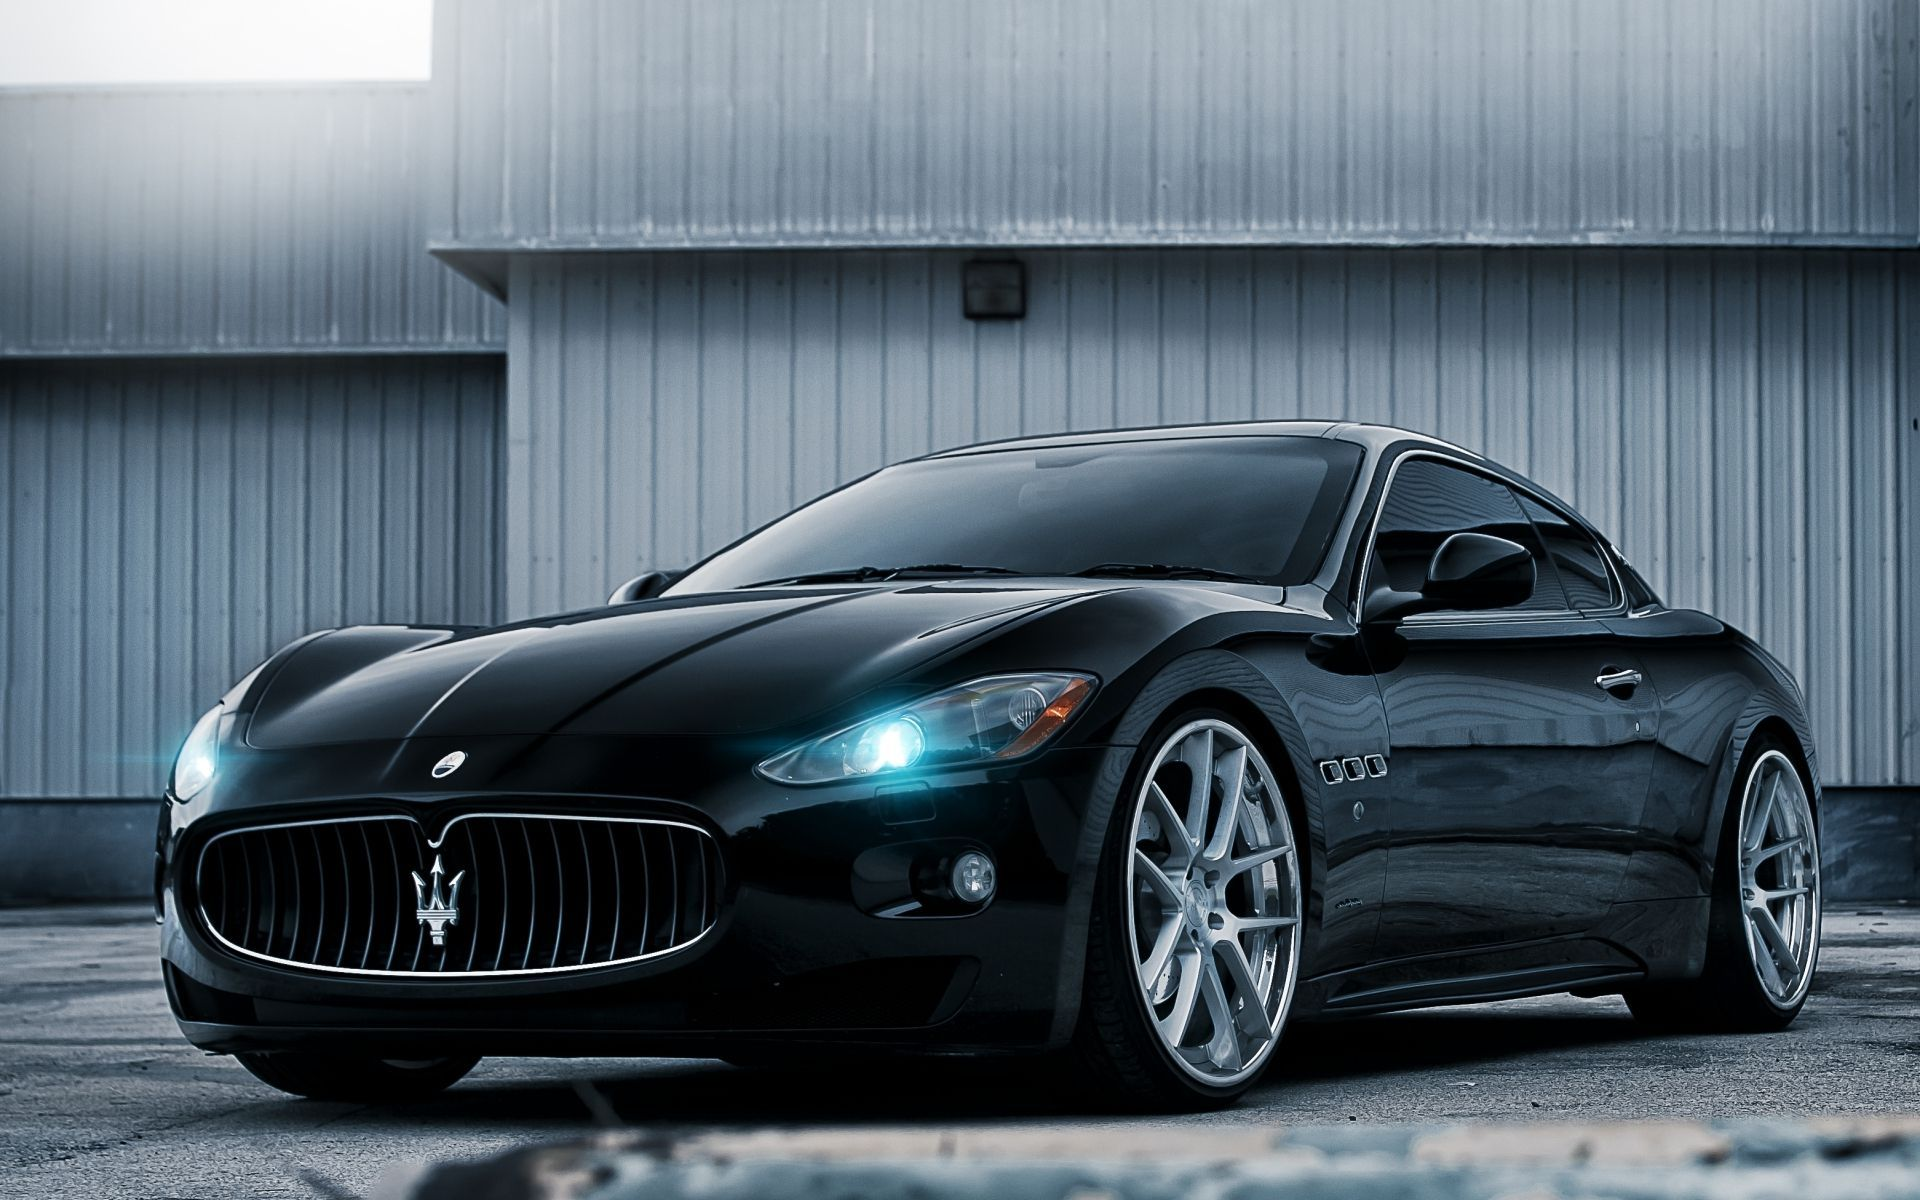 Maserati Granturismo 2014 Wallpaper \x3cb\x3emaserati wallpapers\x3c/b ...